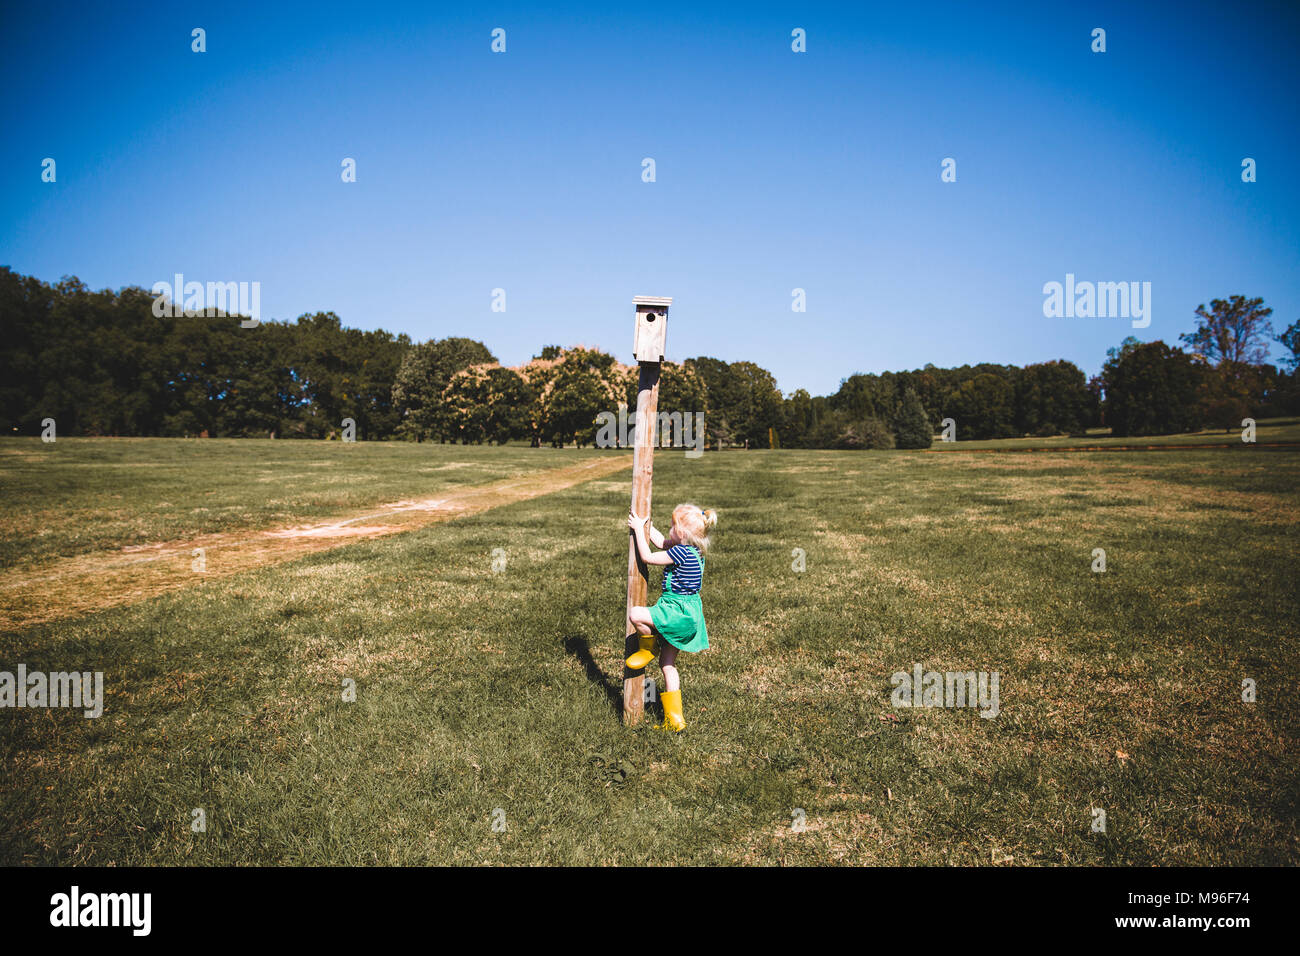 Girl trying to climb pole - Stock Image